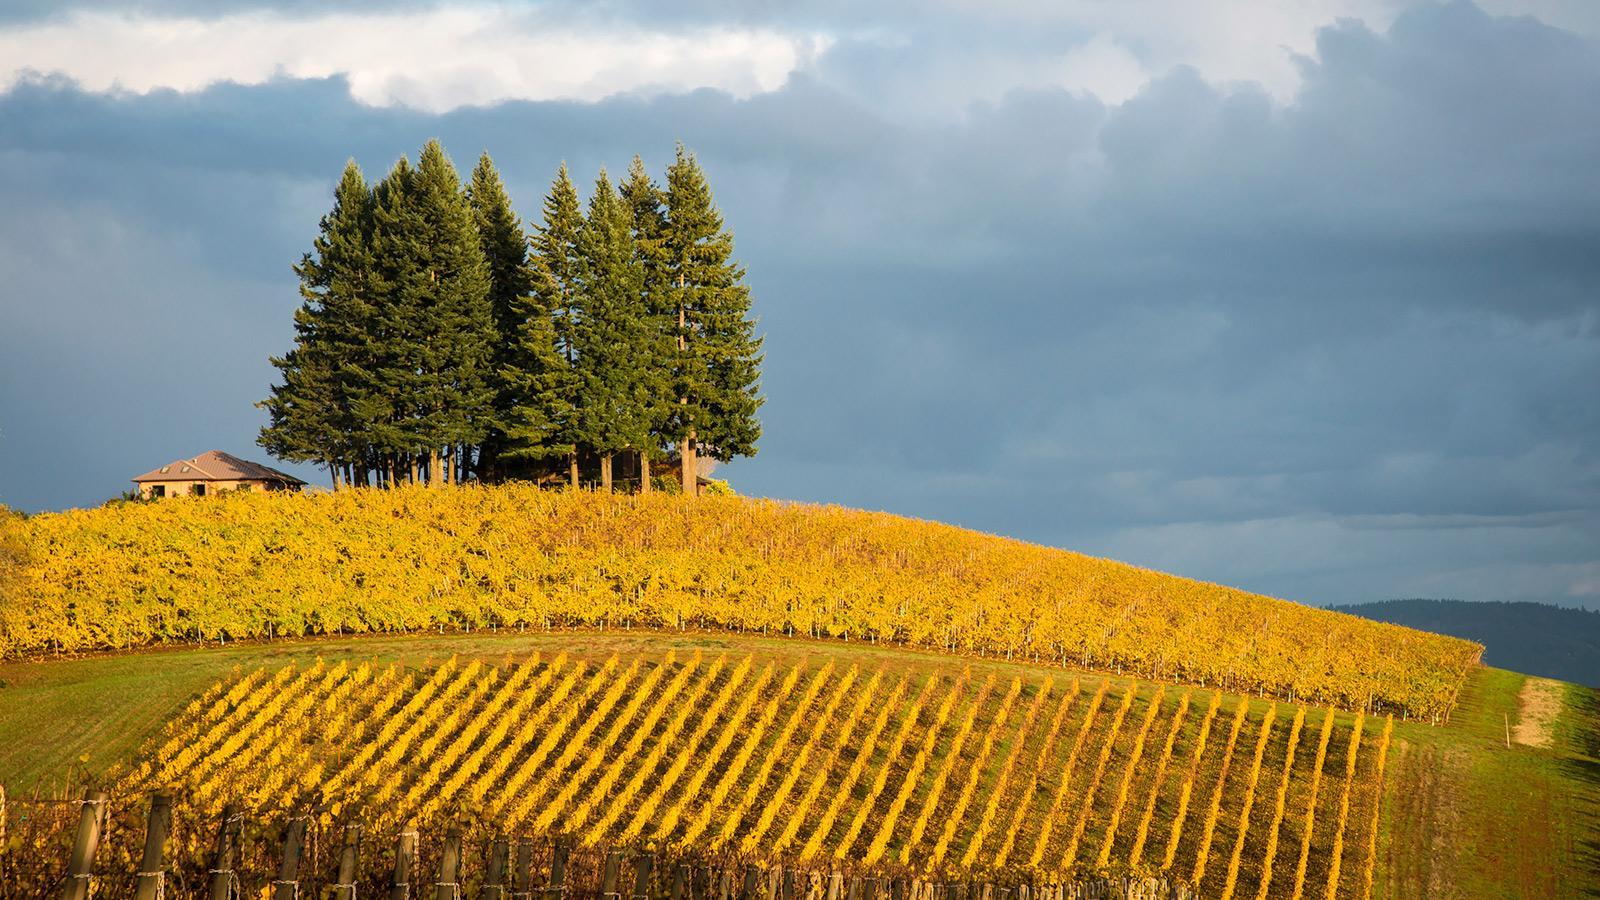 Harvest 2015: Oregon's Wet Years Are Not Created Equal